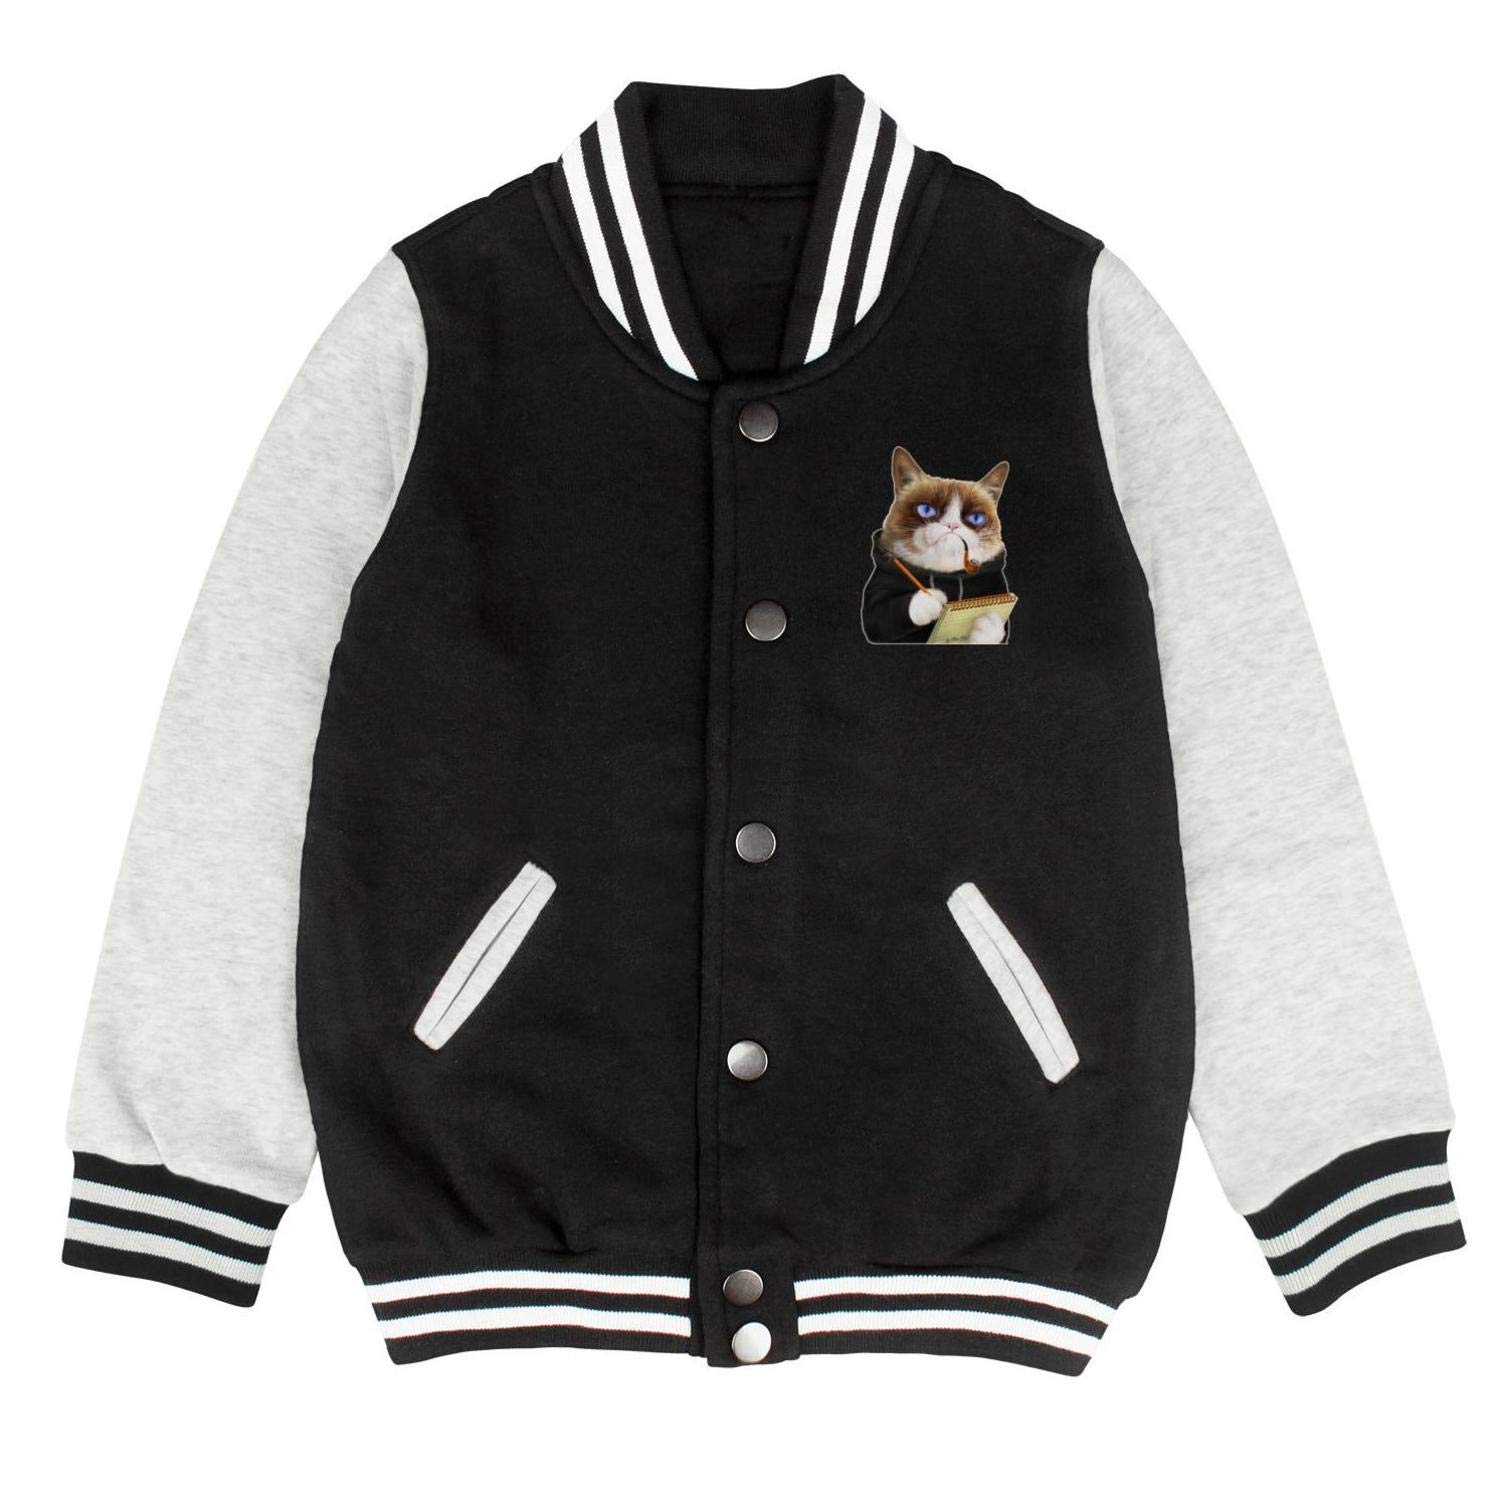 Grumpy cat Police Unisex Coats and Jackets for Kids